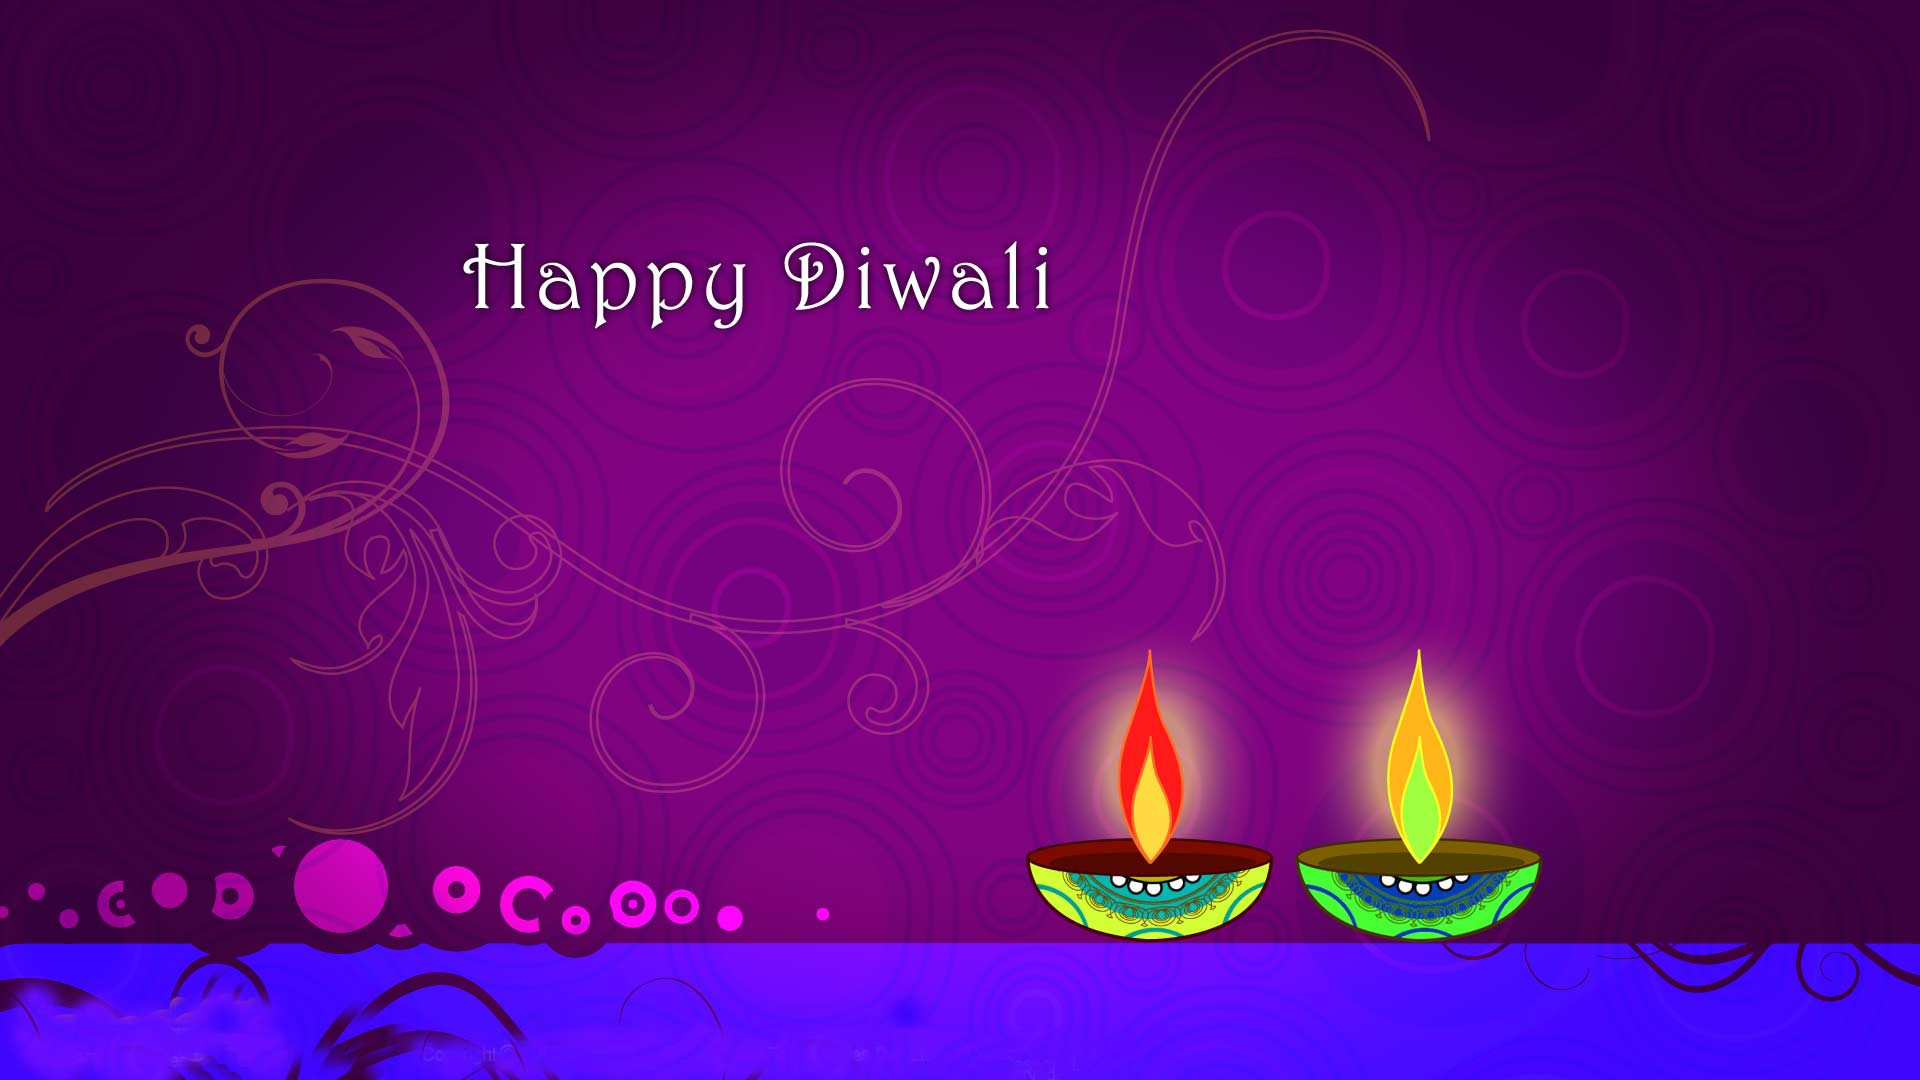 60 best diwali 2017 wishes pictures and images happy diwali colorful diyas wishes wallpaper kristyandbryce Choice Image